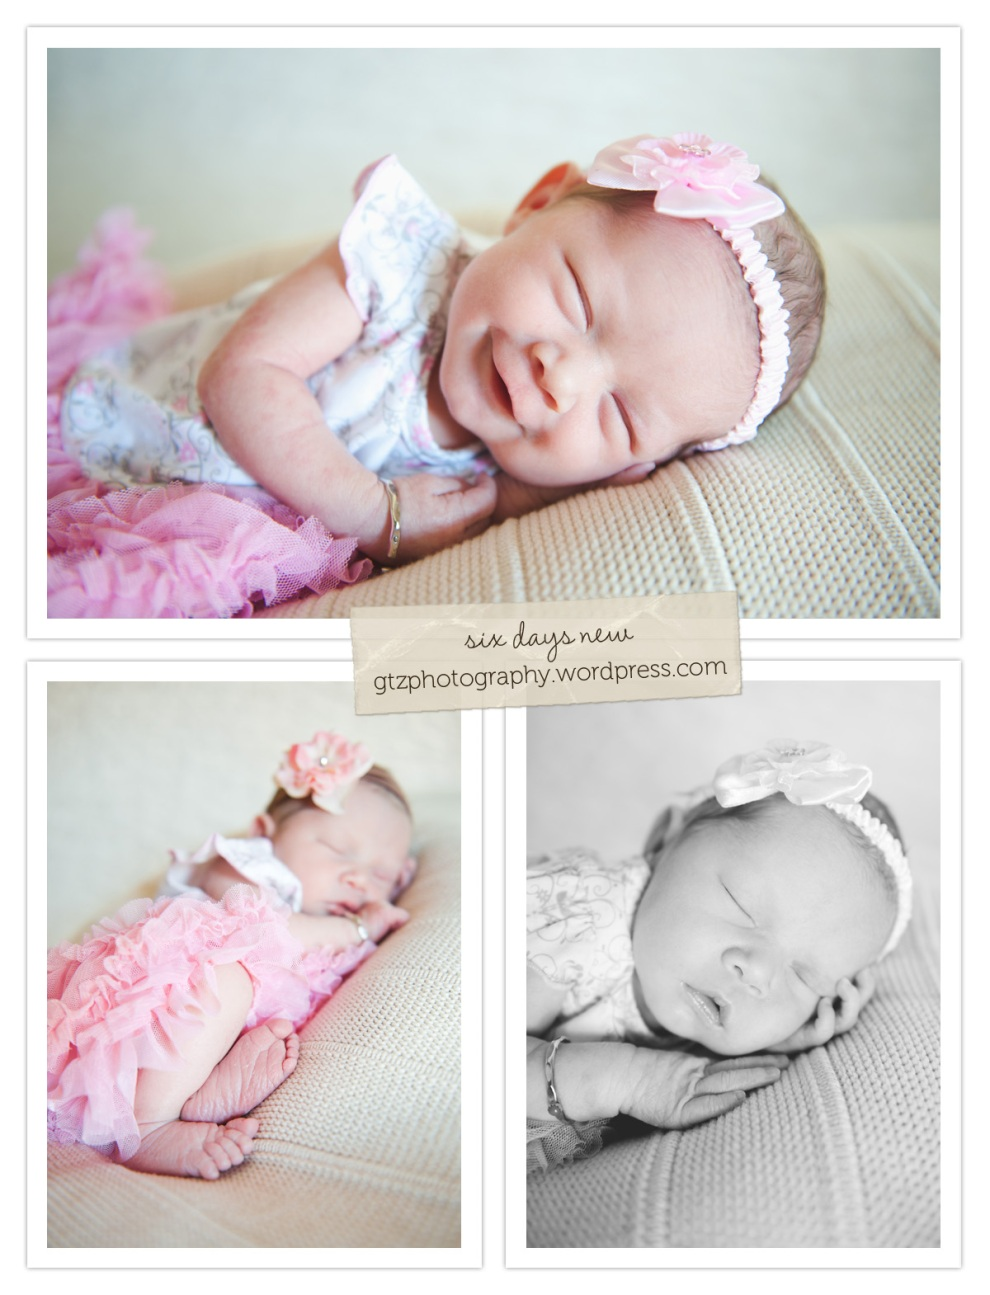 six day old newborn baby girl in pink, sleeping